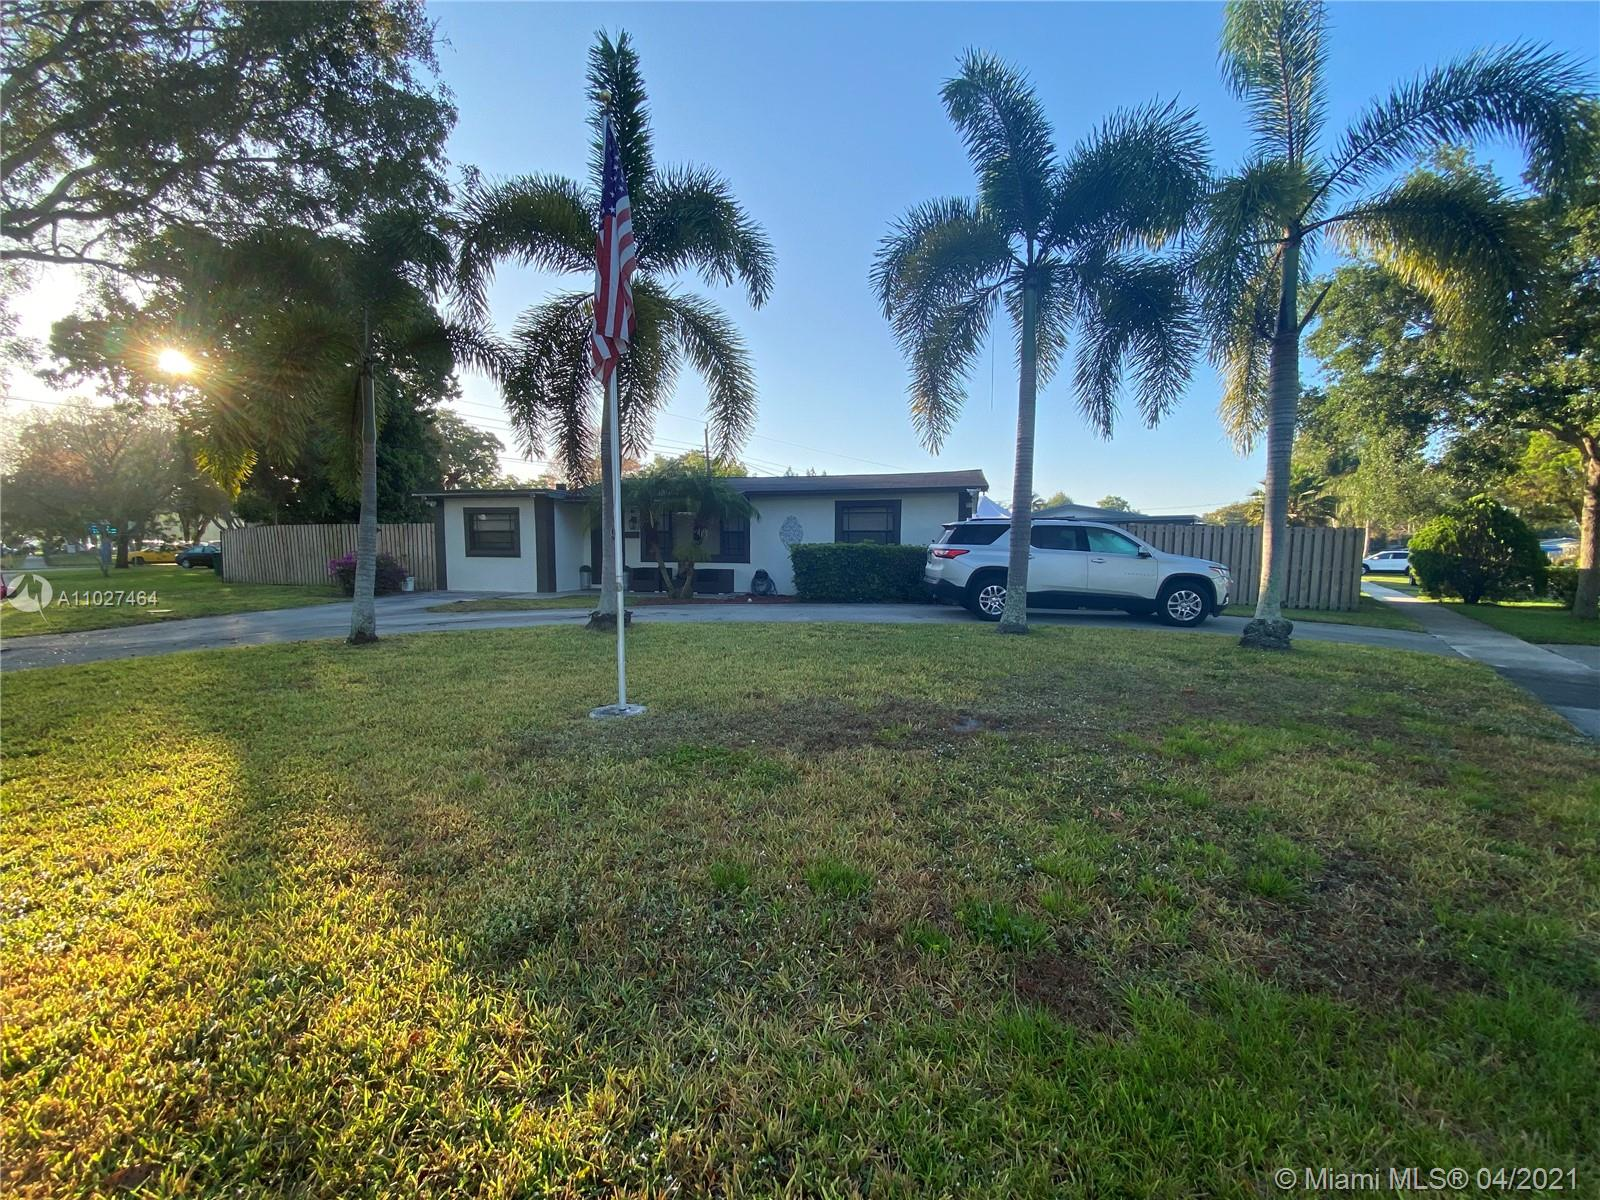 You don't want to miss out on this completely remodeled 3 bed/2bath home located in desirable Cooper City! This gem is situated on spacious corner lot, featuring a circular driveway and ample parking space. There have been no expenses spared in the remodeling of this home. The kitchen is complete with quartz countertops, new appliances and matching bar.  Wood-like porcelain floors throughout the entire home, new baseboards, trim and doors. Both master and guest bathroom have been tastefully designed.  Home has plenty of storage, built-in closets, laundry room with new washer/dryer and new light fixtures throughout. Backyard has plenty of space and the possibilities are endless.  Hurry before its gone!